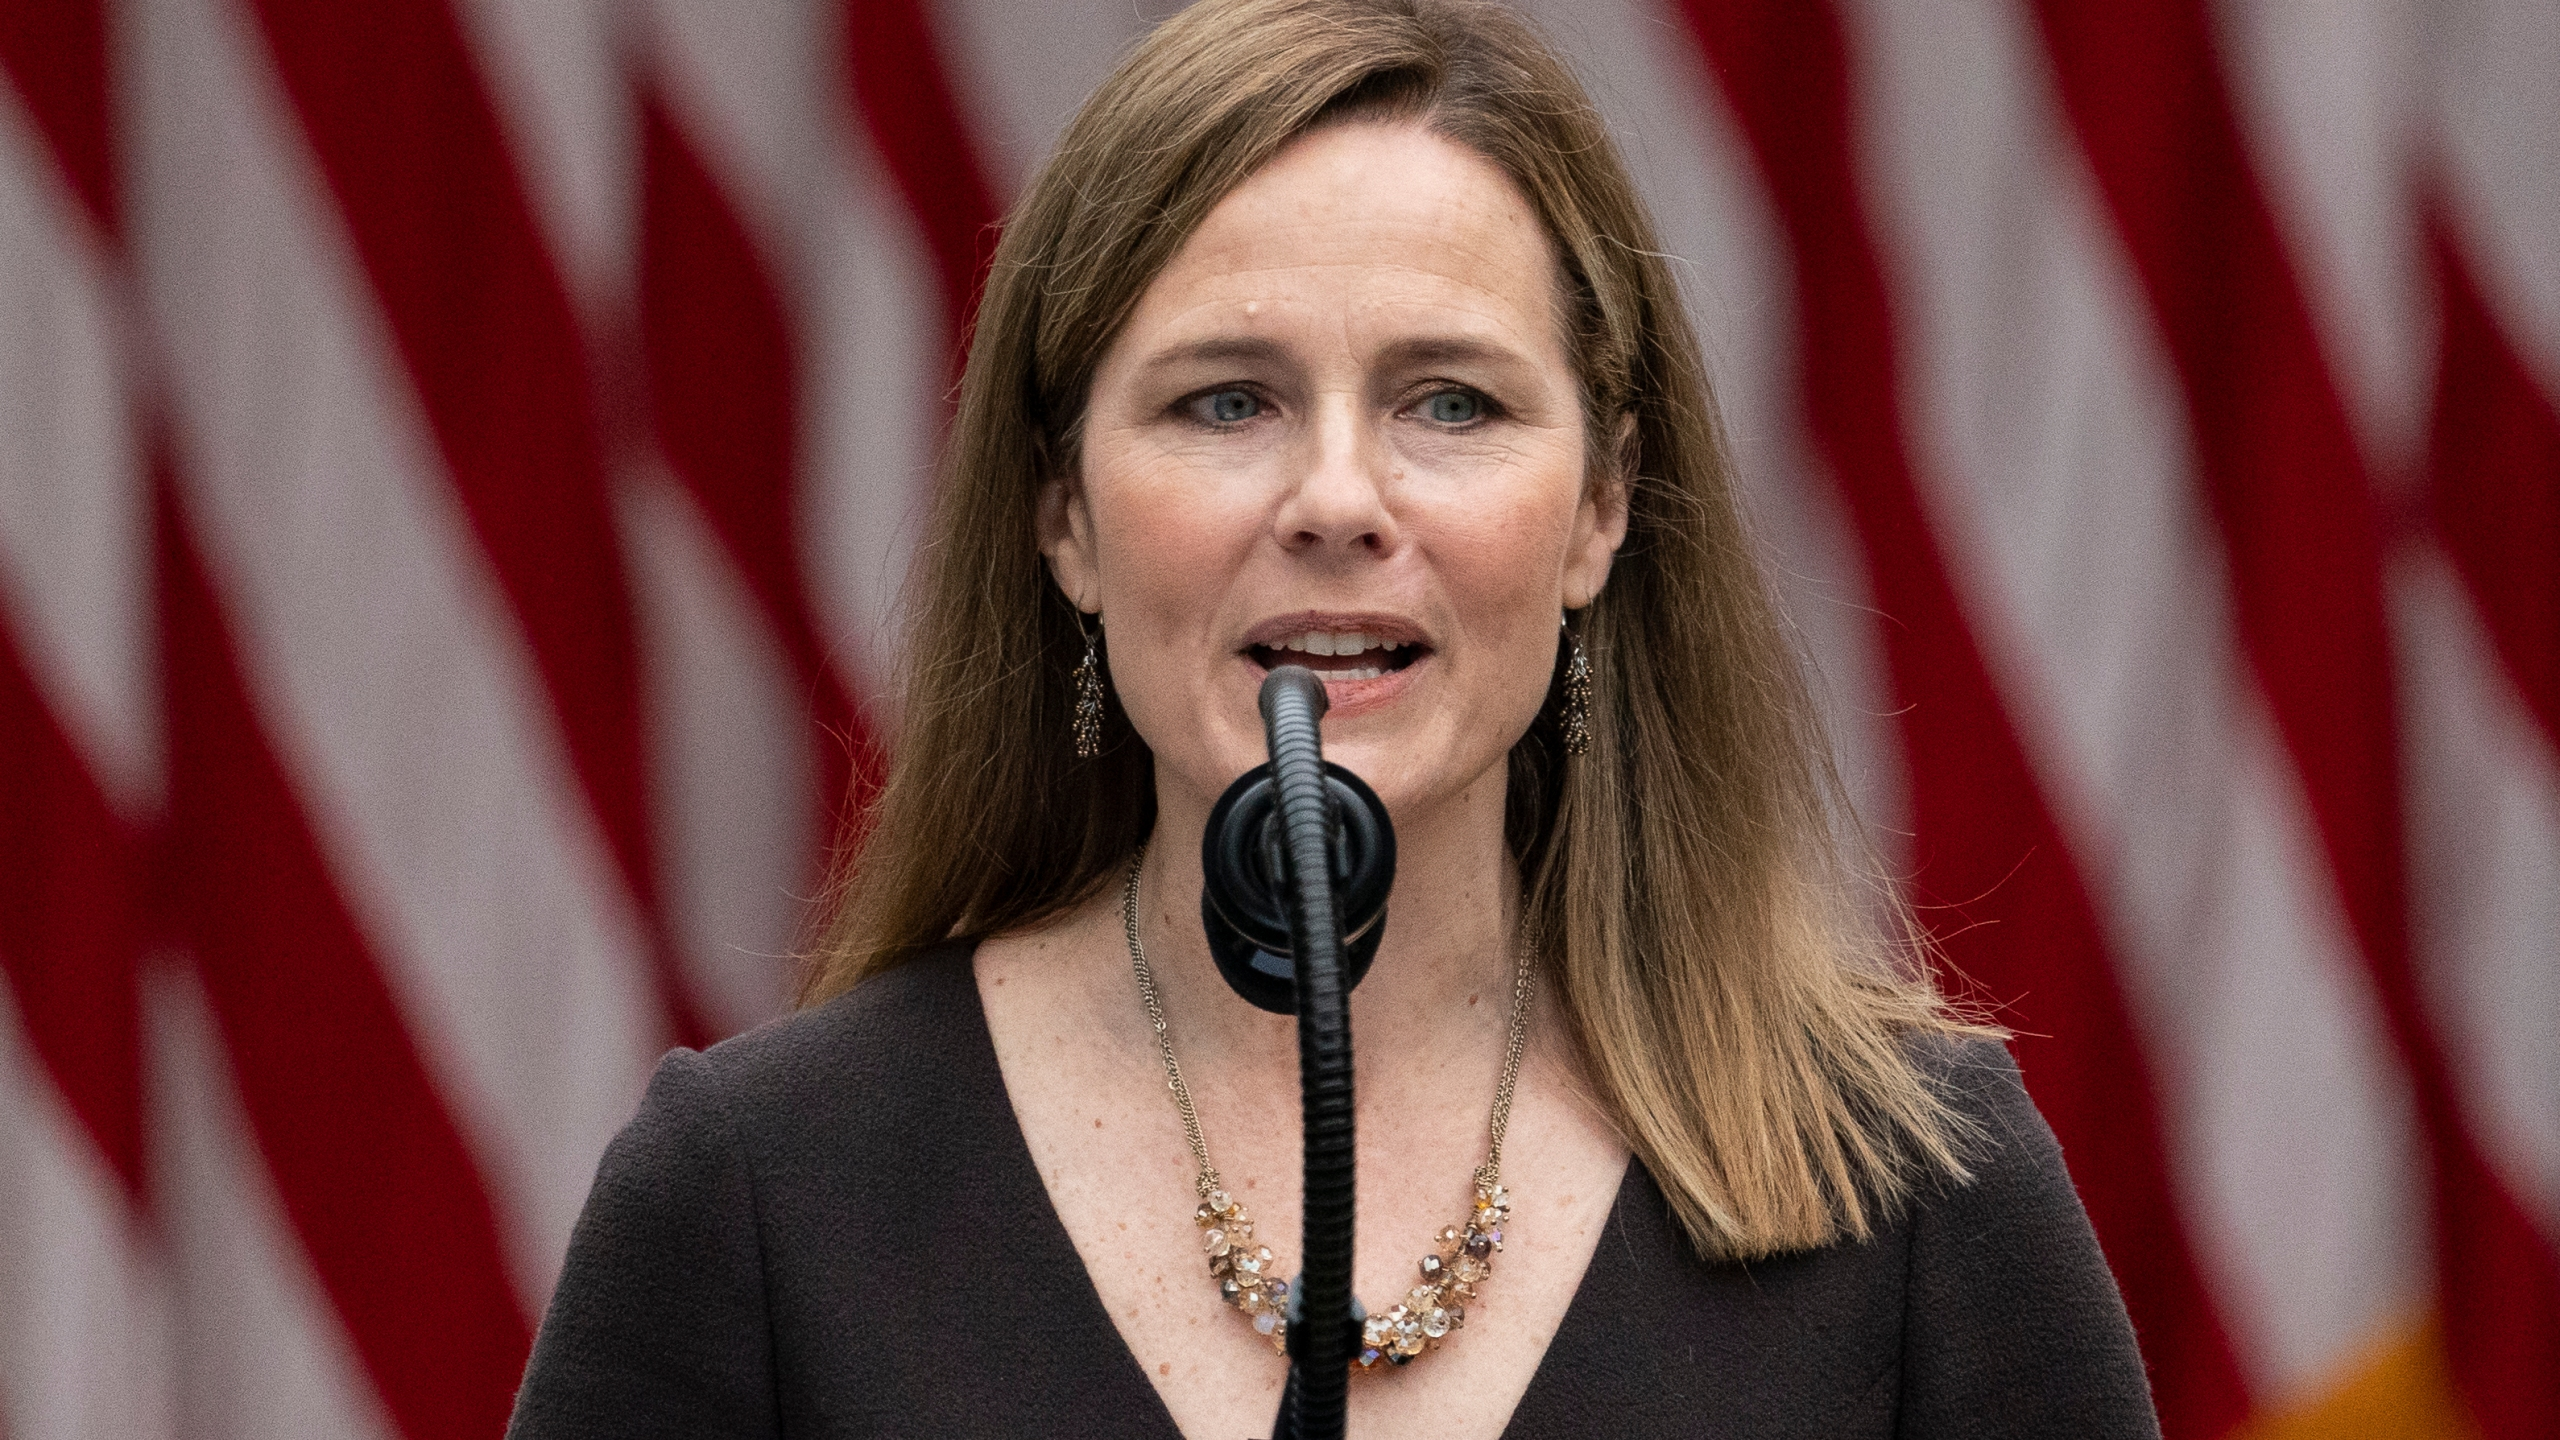 Faith Group Deletes Mentions Of Amy Coney Barrett From Its Website Mywabashvalley Com